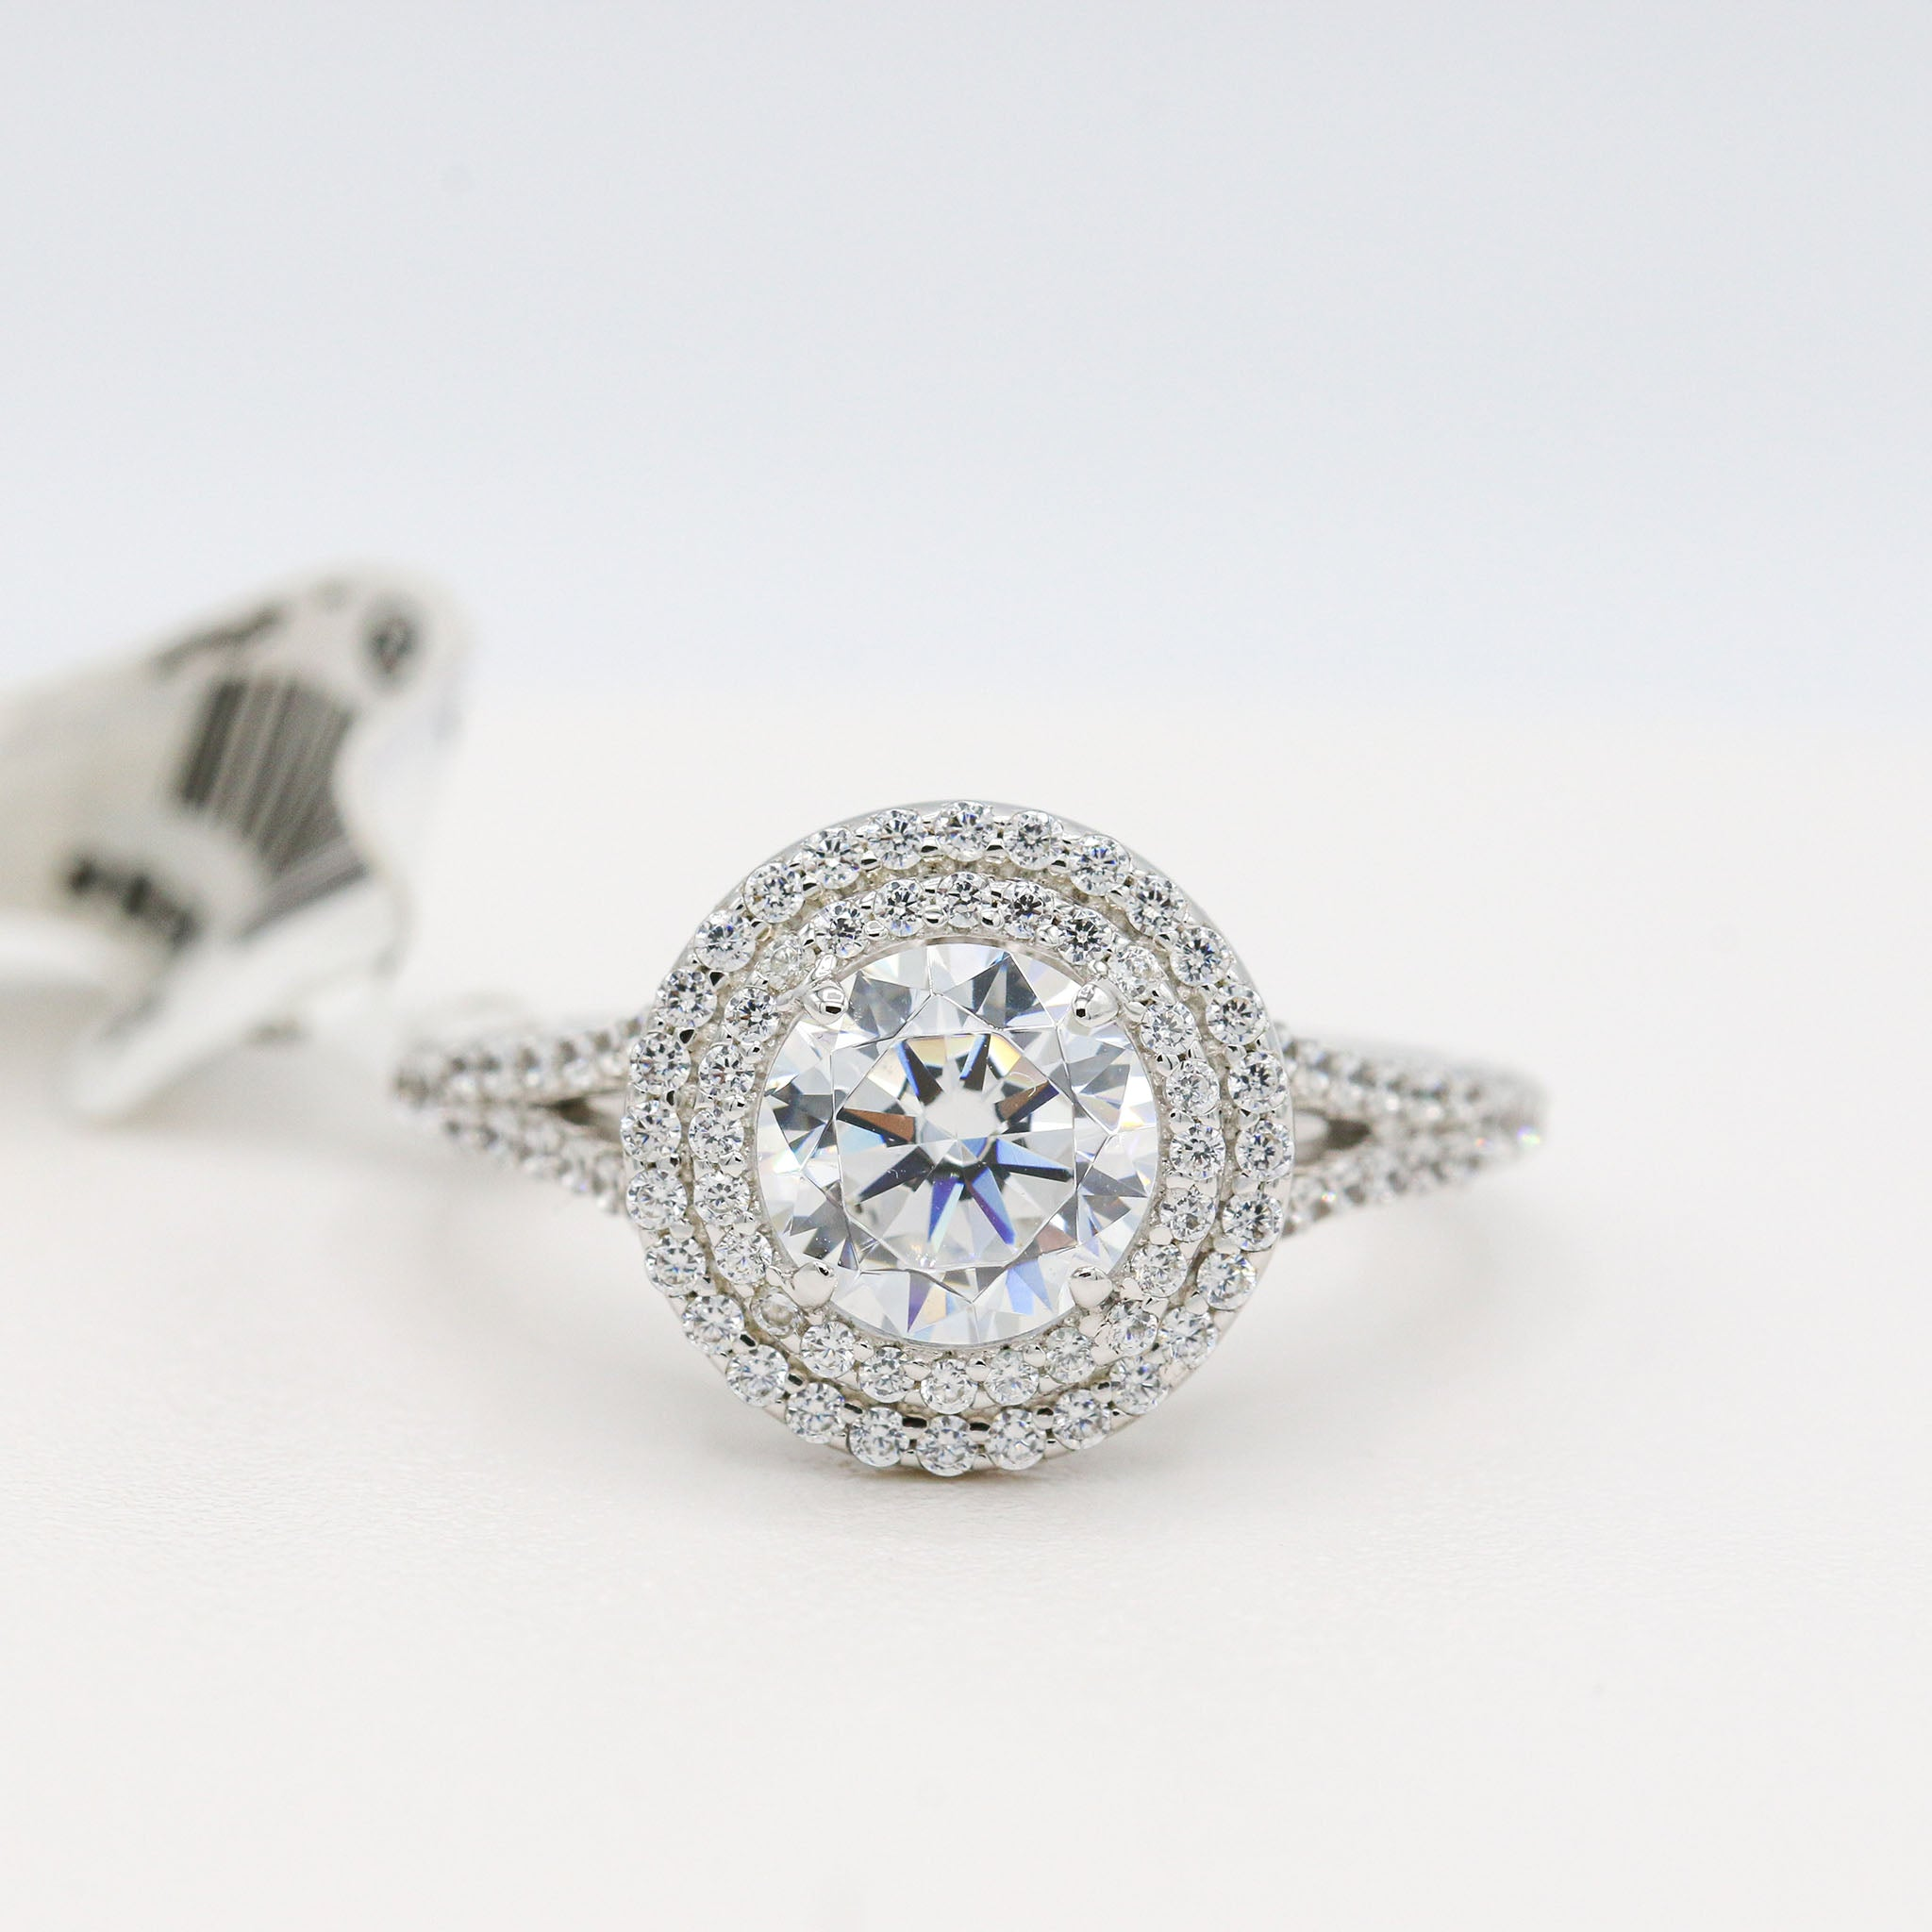 Jaw Dropping Lafonn Sterling Silver Bonded in Platinum Halo Ring (1.28ct Simulated Diamonds)